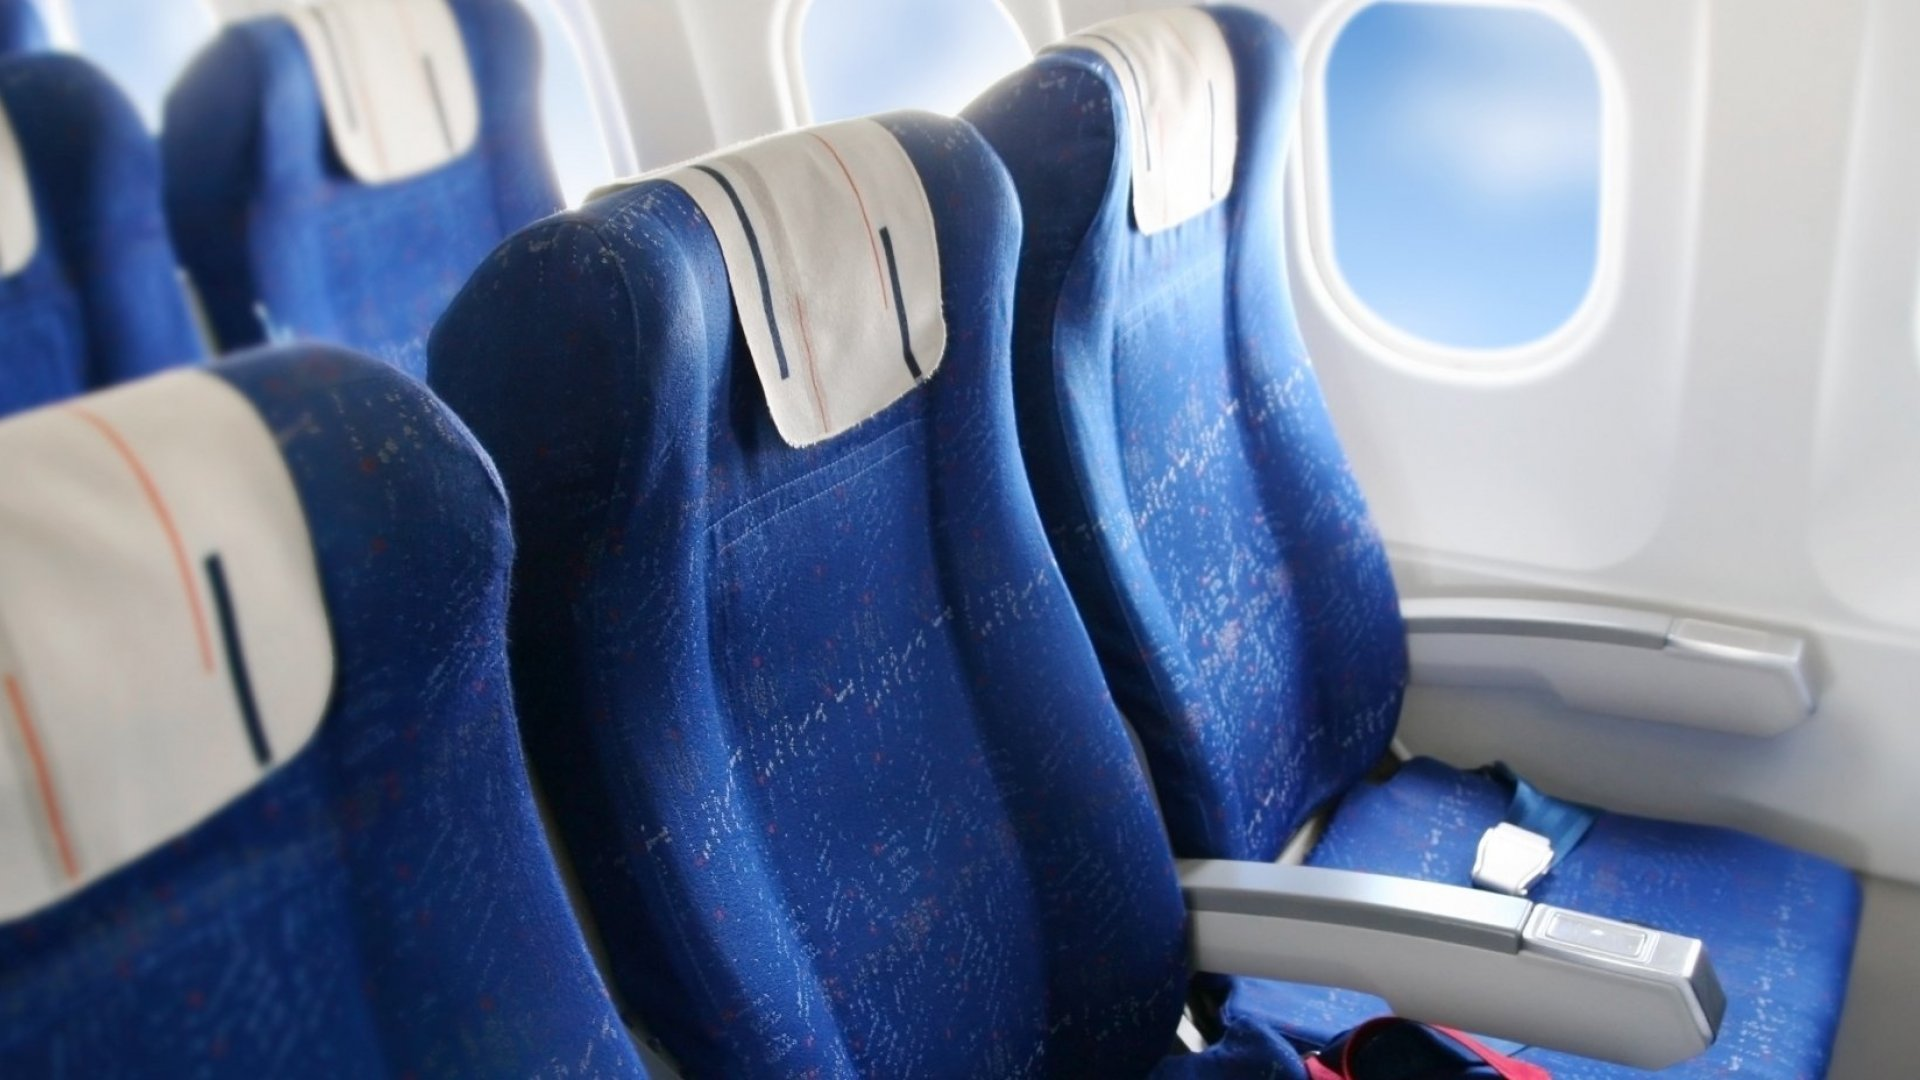 A Drunk Guy 'Inappropriately Touched' a Woman on a Plane. He'll Have a Heart Attack If He Ever Learns Who She Was